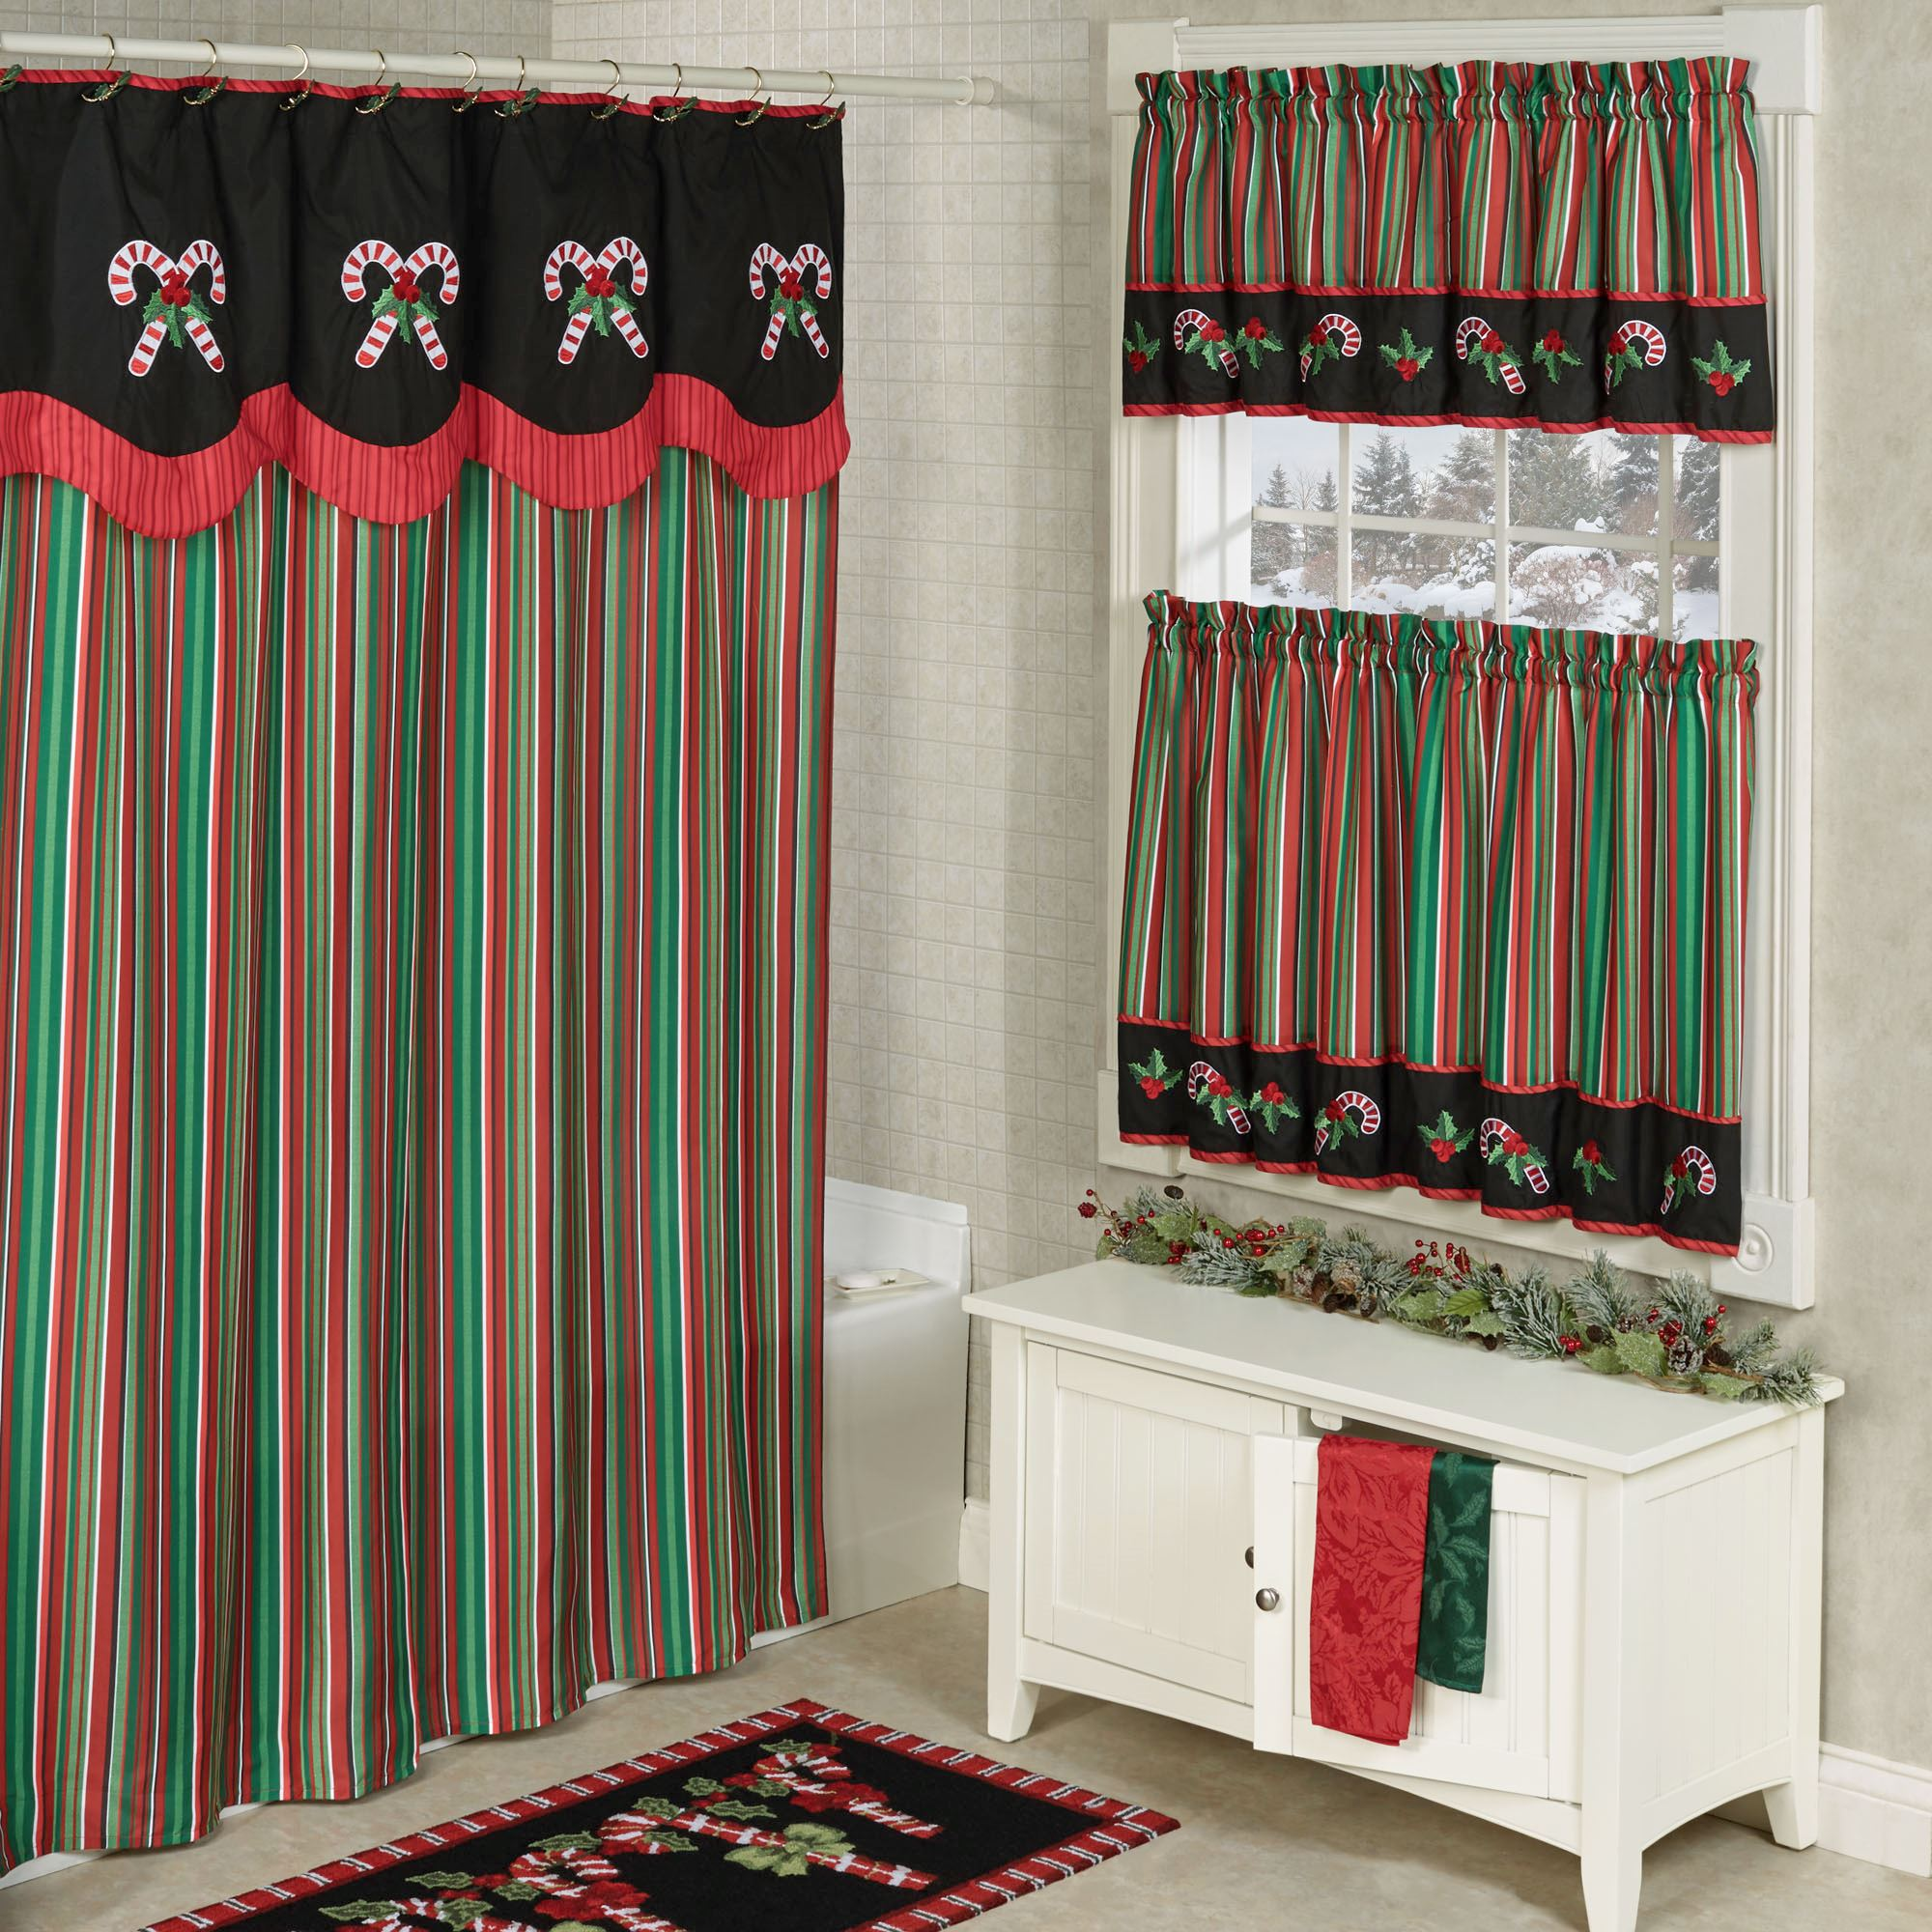 Peppermint Dreams Striped Holiday Shower Curtain